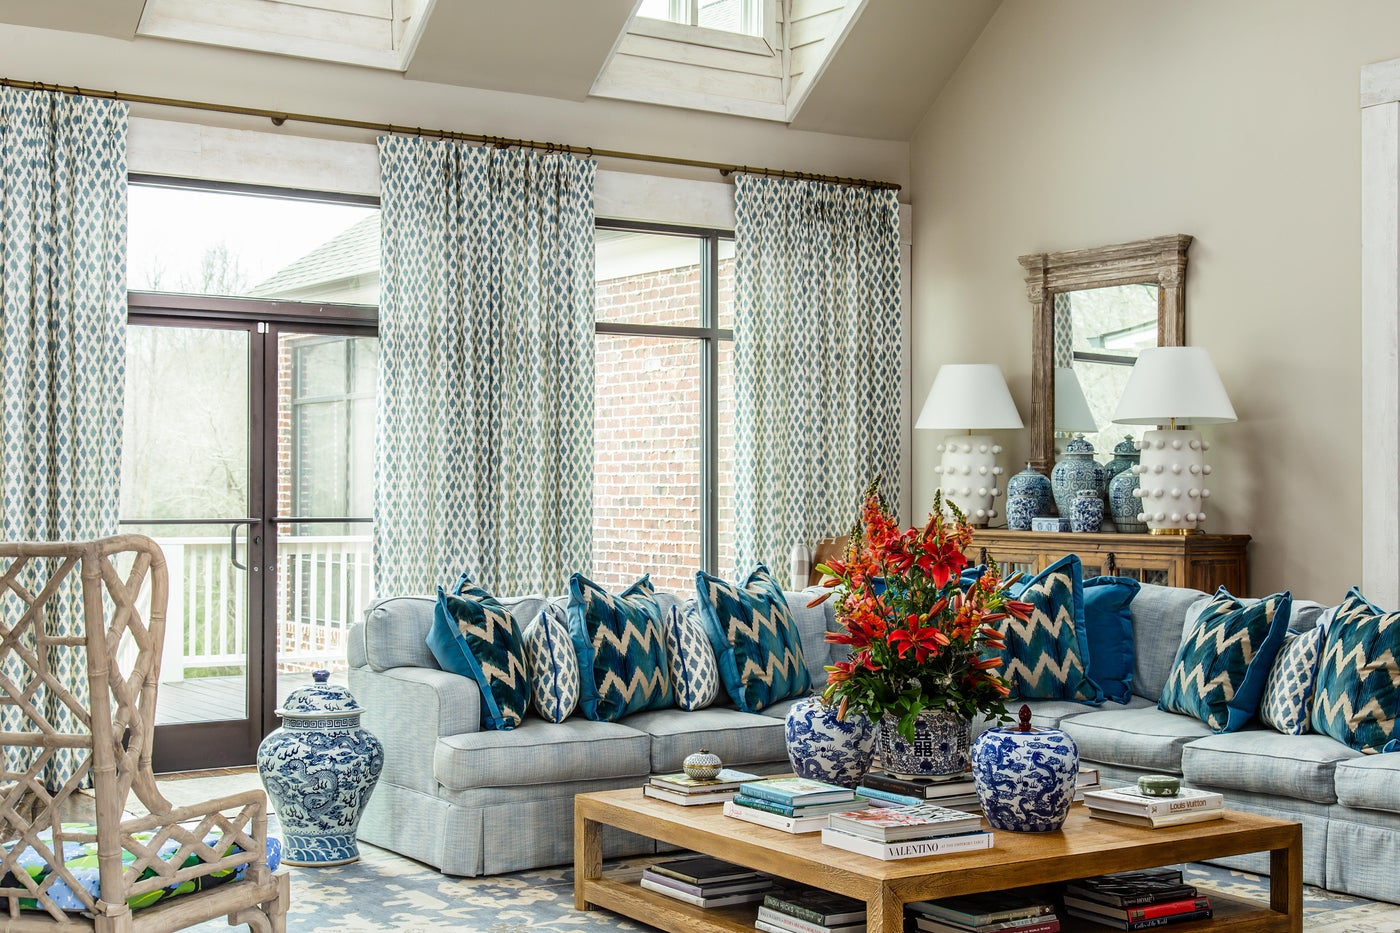 Farmhouse Blue and White Living Room